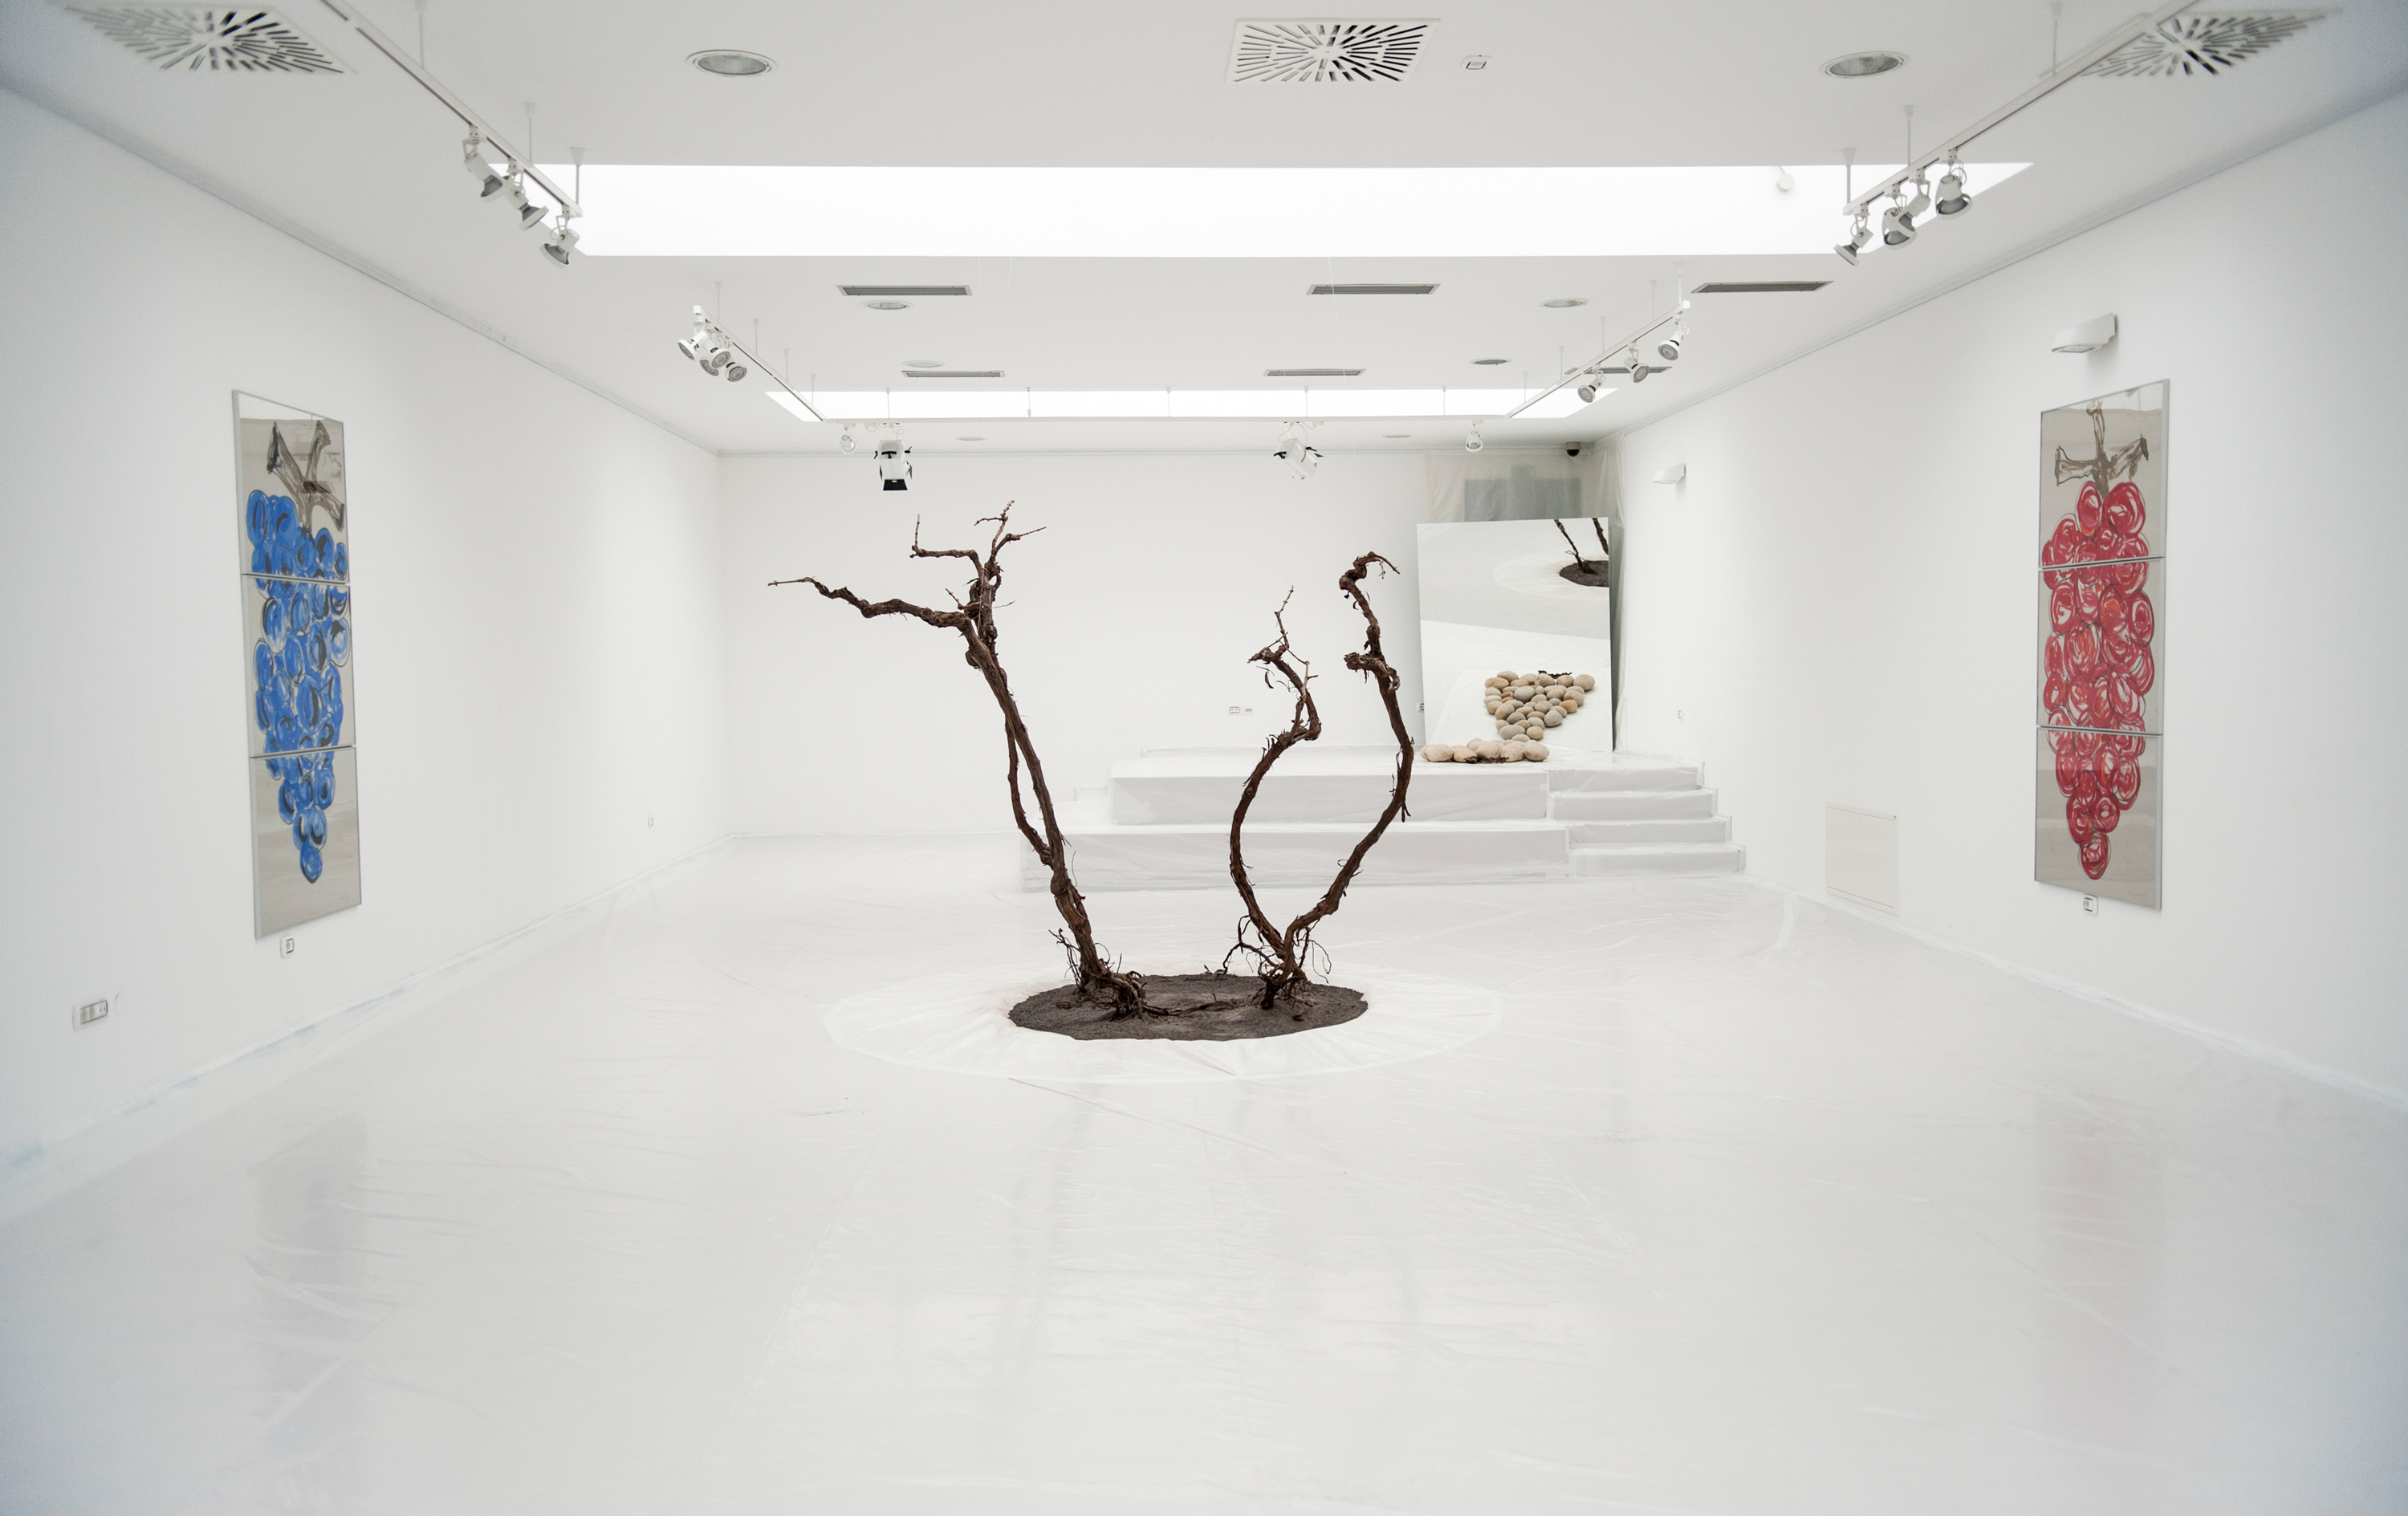 White gallery room. Branches placed upright in the middle. On 2 opposite walls hang huge mirrors with a large grapevine drawings. A podest with stockpile of stones and a mirror in the back of the room.